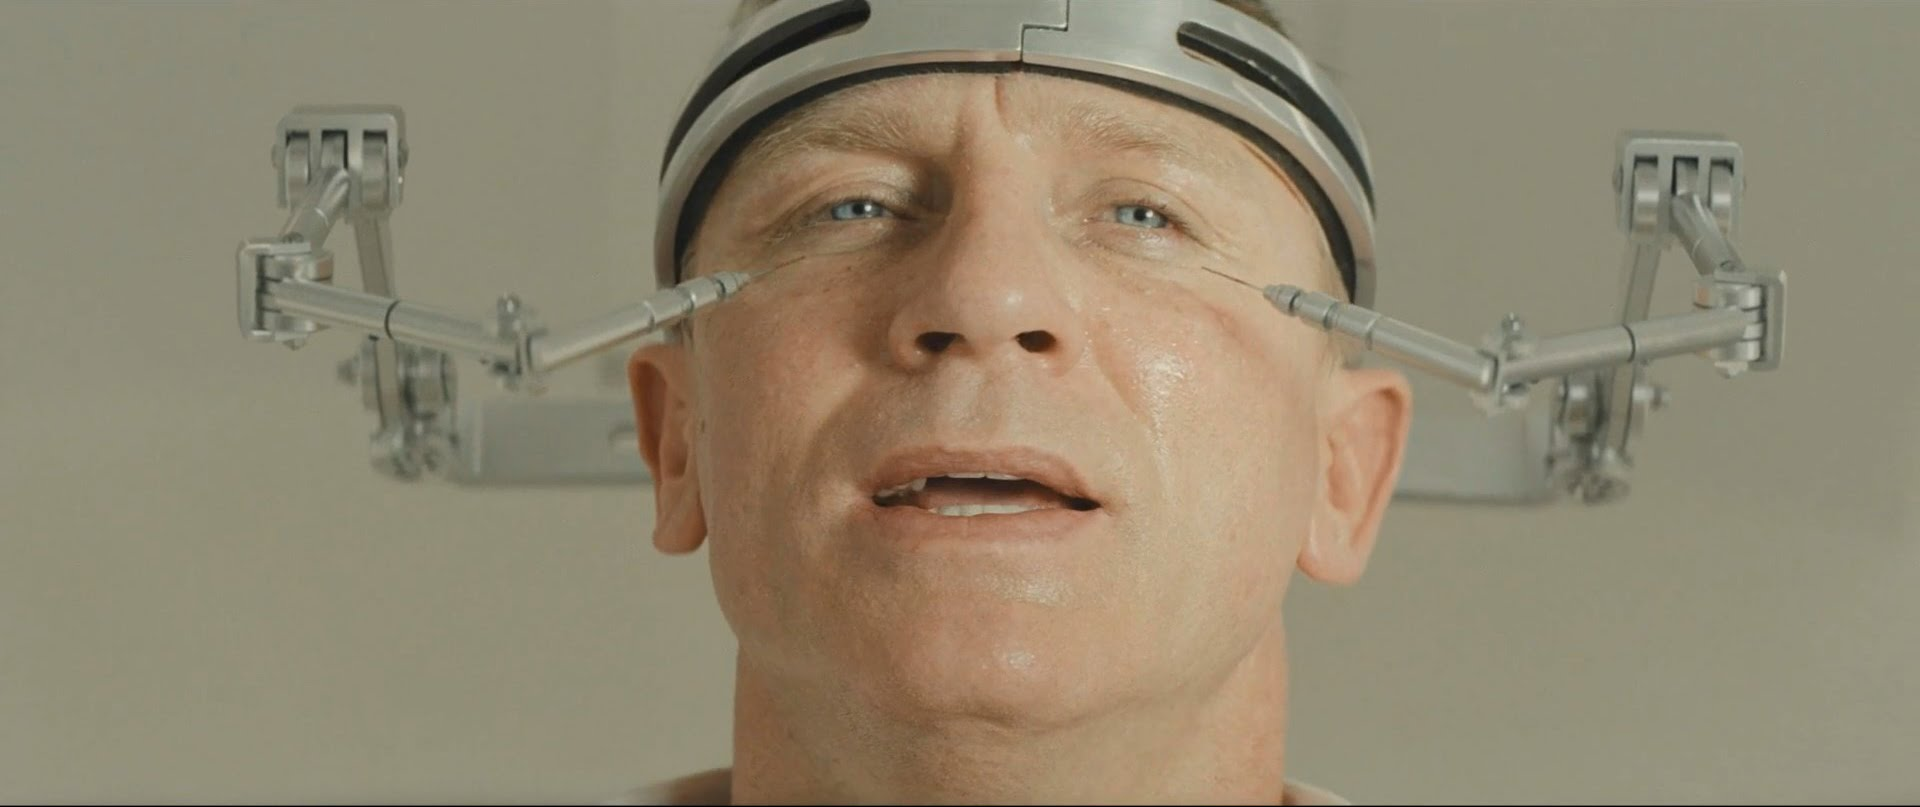 A scene from a James Bond movie; Daniel Craig pictured with a device on his head